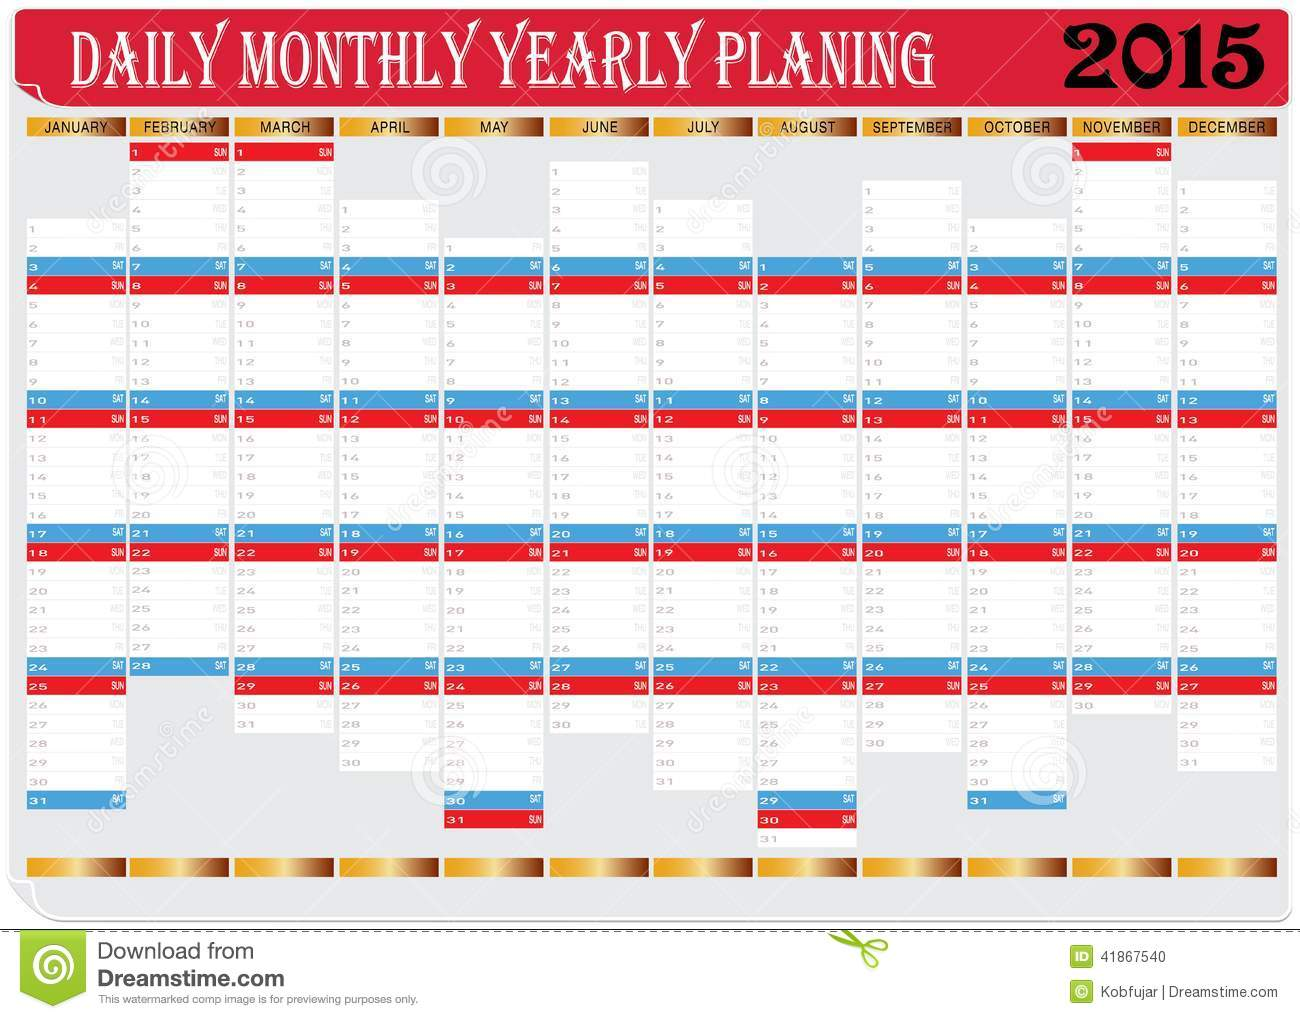 Monthly Calendar Yearly : Daily monthly yearly calendar planing chart stock